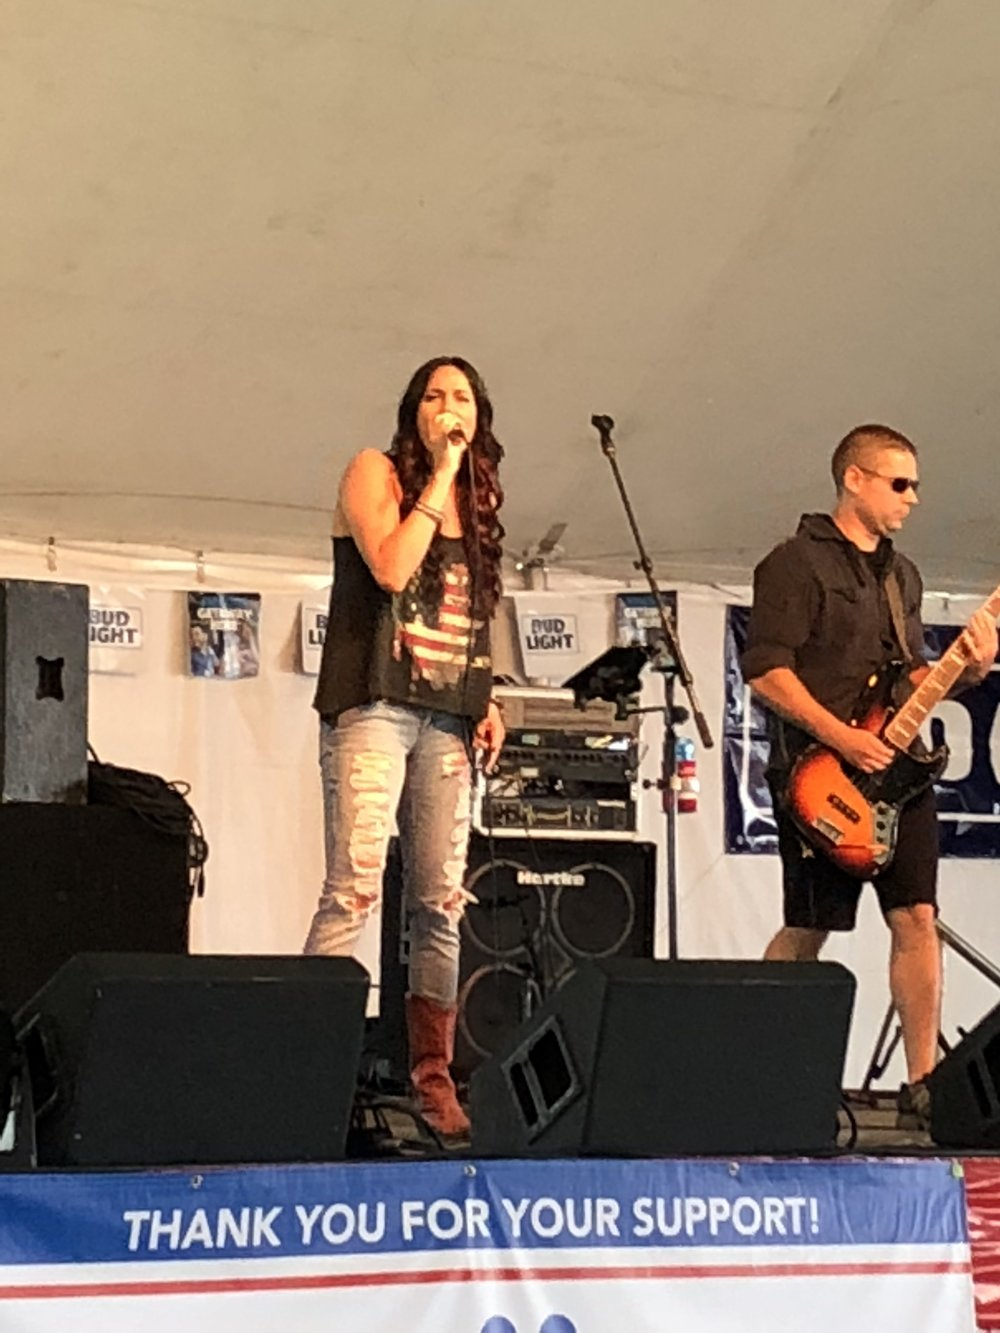 C.K. and The Gray at Homerfest